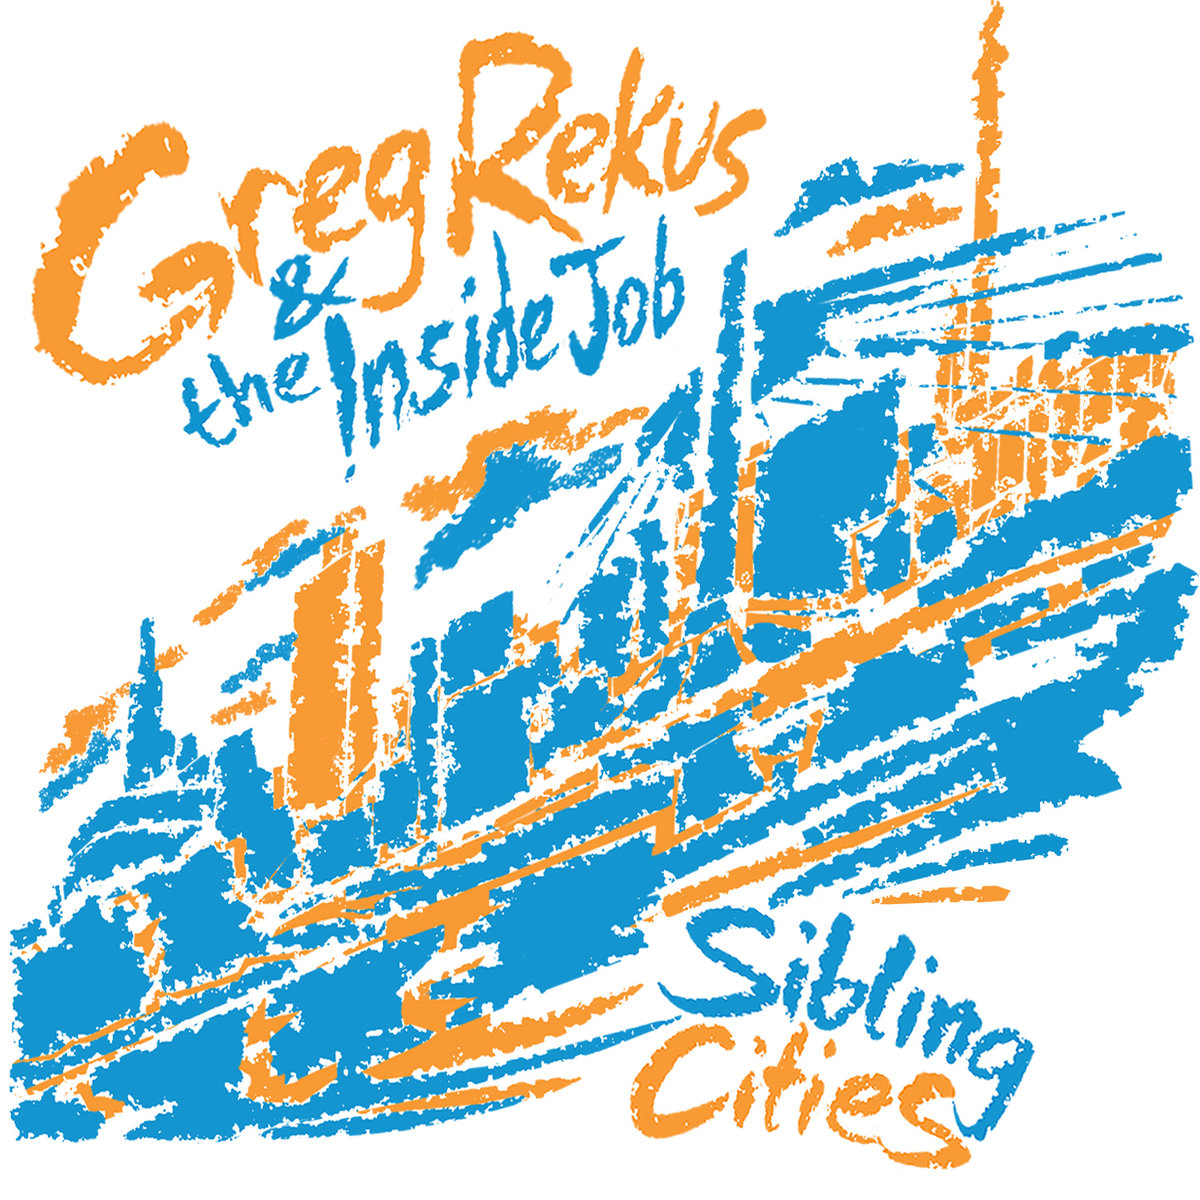 Greg Rekus and the Inside Job - Sibling Cities  Produced, Engineered, Mixed